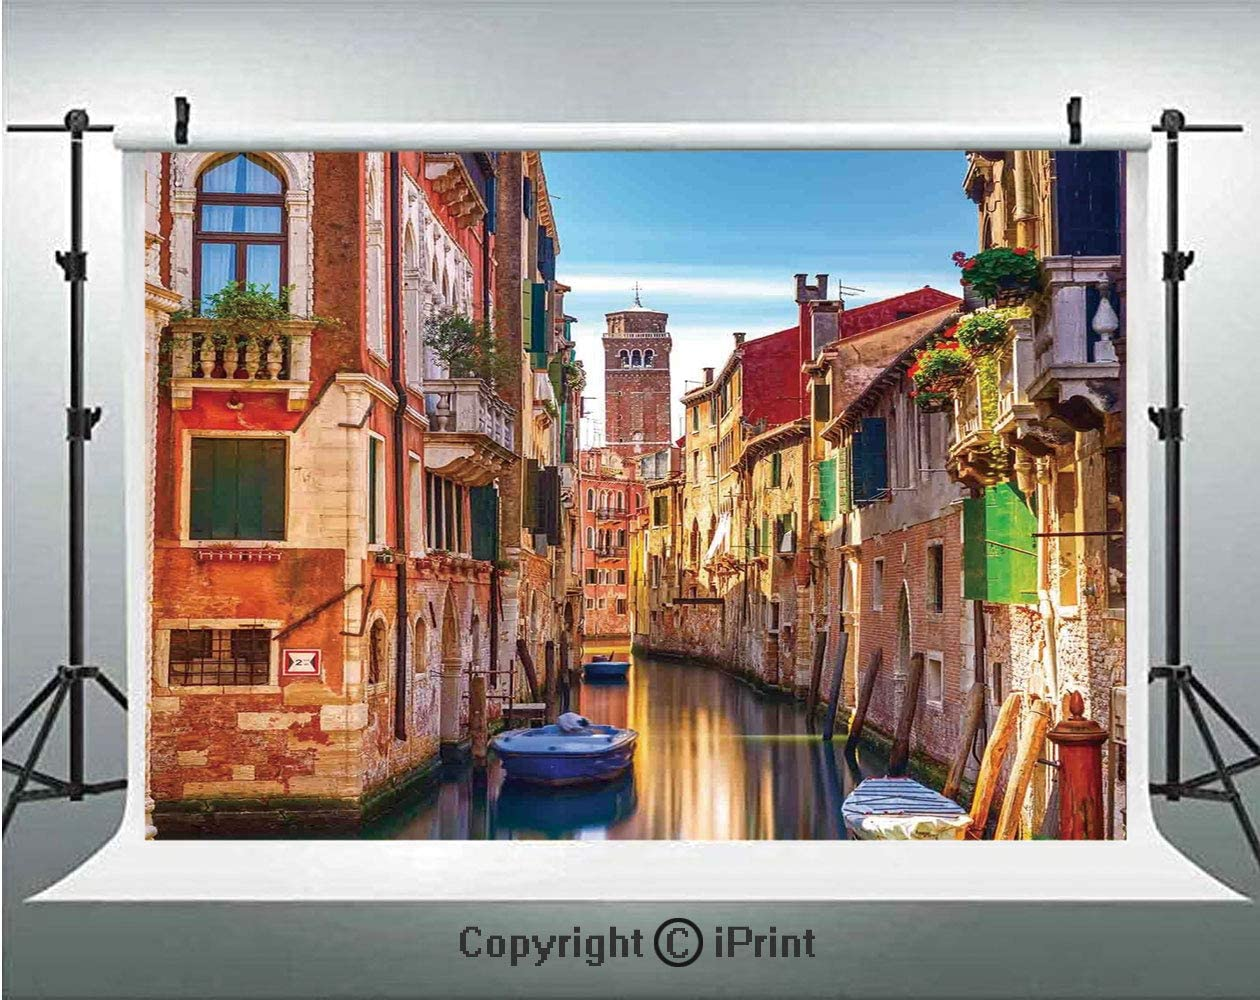 Cityscape Photography Backdrops Venice Cityscape Narrow Water Canal Building Traditional Old Buildings Heritage,Birthday Party Background Customized Microfiber Photo Studio Props,10x6.5ft,Multi